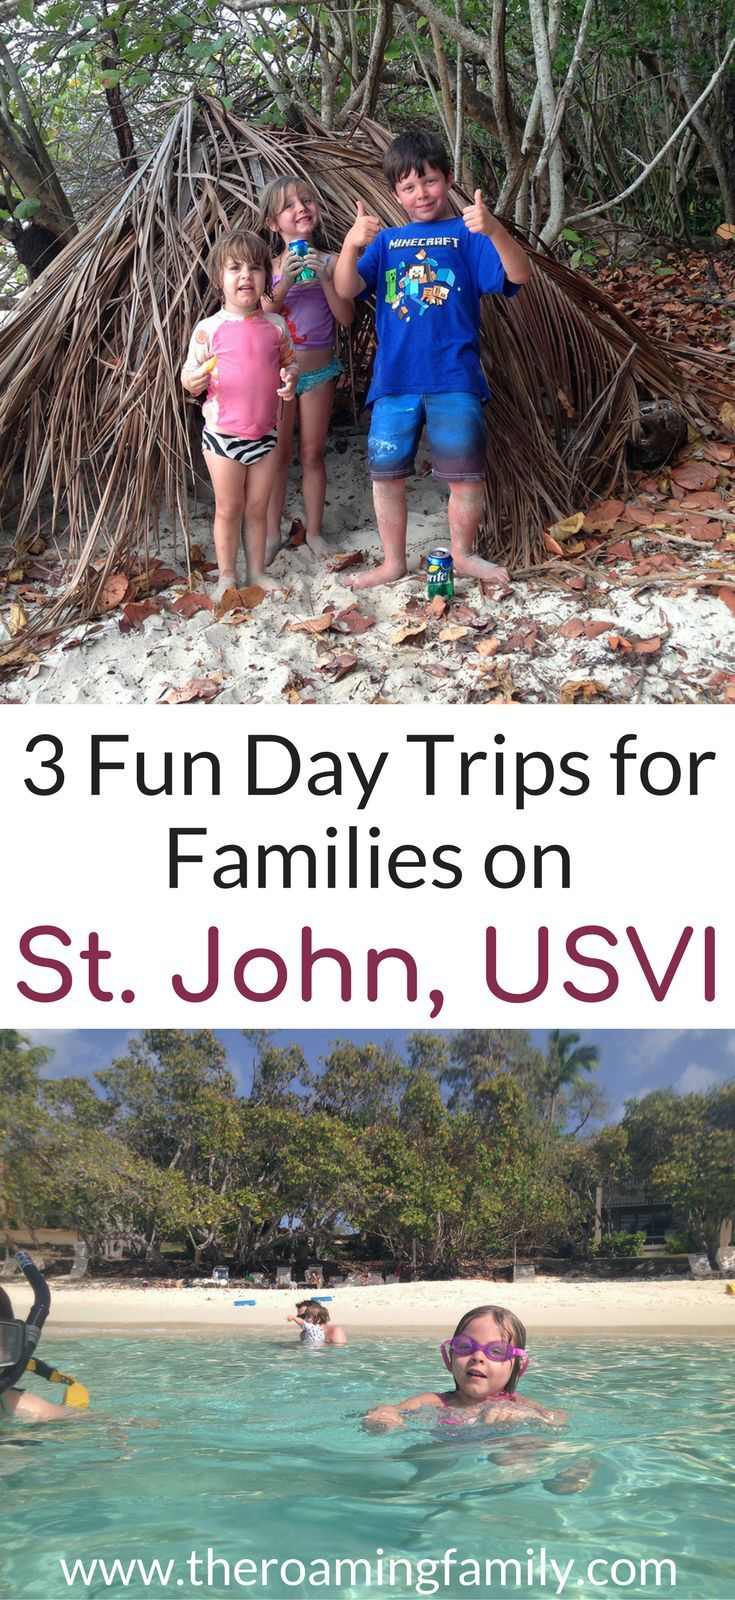 St. John in the US Virgin Islands is a beautiful family friendly island. Come see what our favorite day trips on St. John are including renting a boat in St. John and an underwater trail you can follow! Don't forget to save these fun family friendly activities on St. John to your travel board. #daytrip #stjohn #usvirginislands #familyvacation #familytrips #familytripplanners #kidfriendly